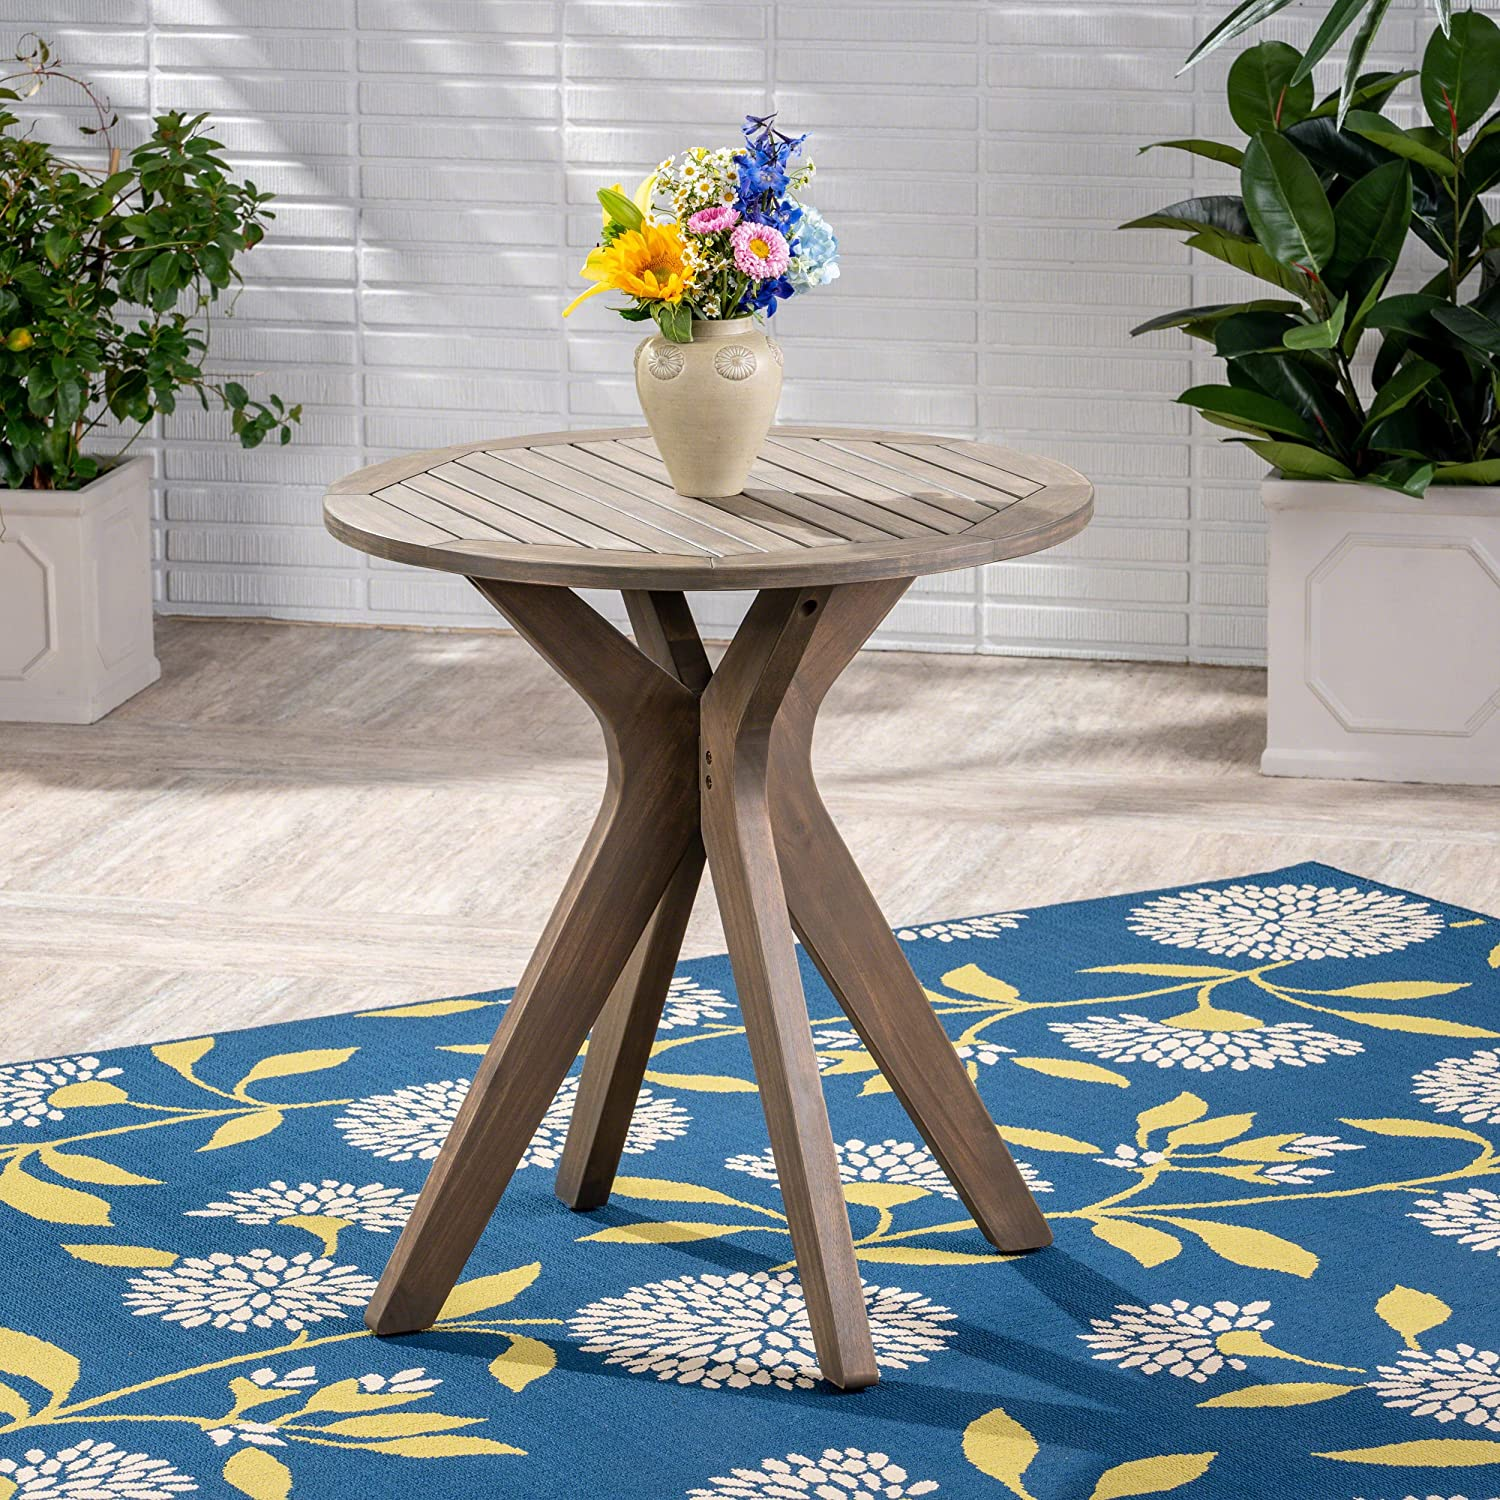 Image of Christopher Knight Home 304871 Brigitte Outdoor Round Acacia Wood Bistro Table with X Legs, Grey Bistro Tables